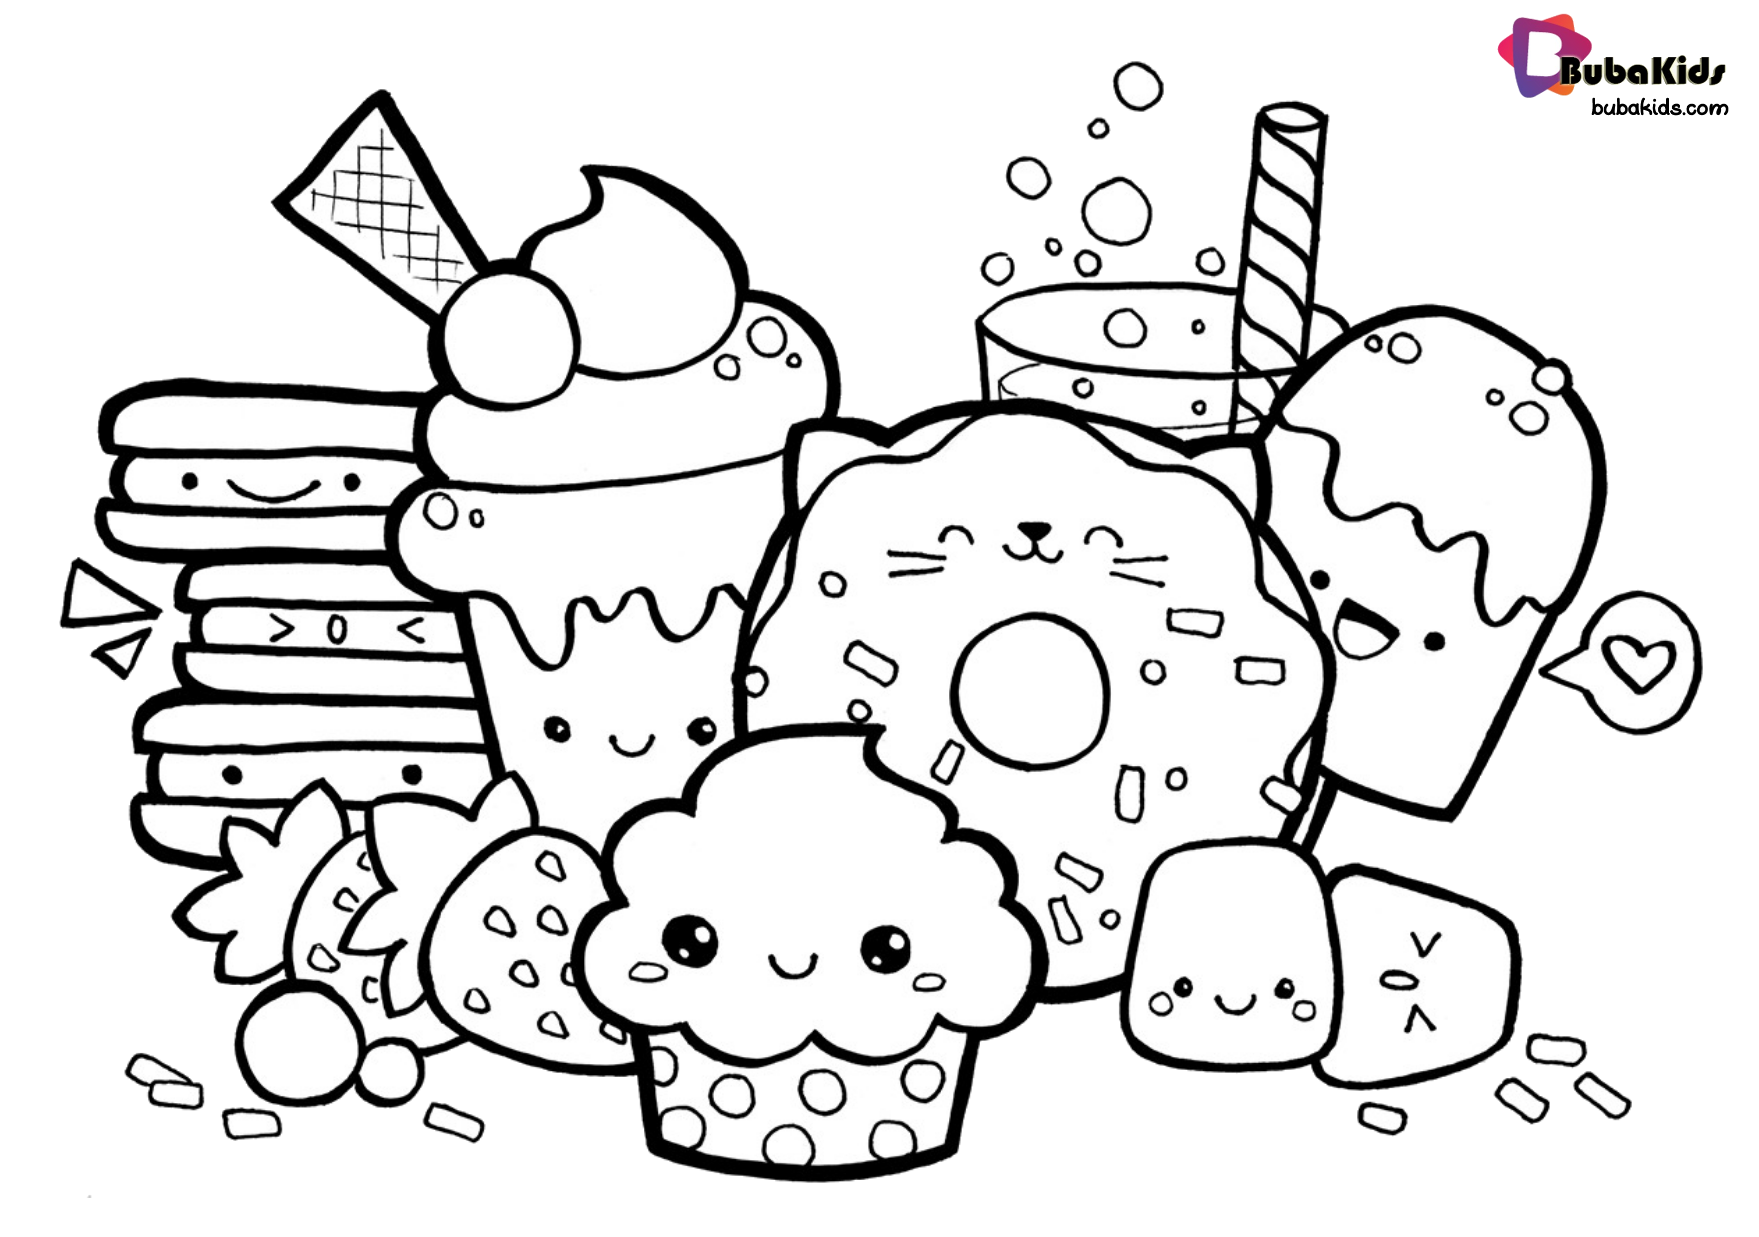 coloring sheets easy food cute food coloring pages cartoon pizza free printable coloring sheets food easy